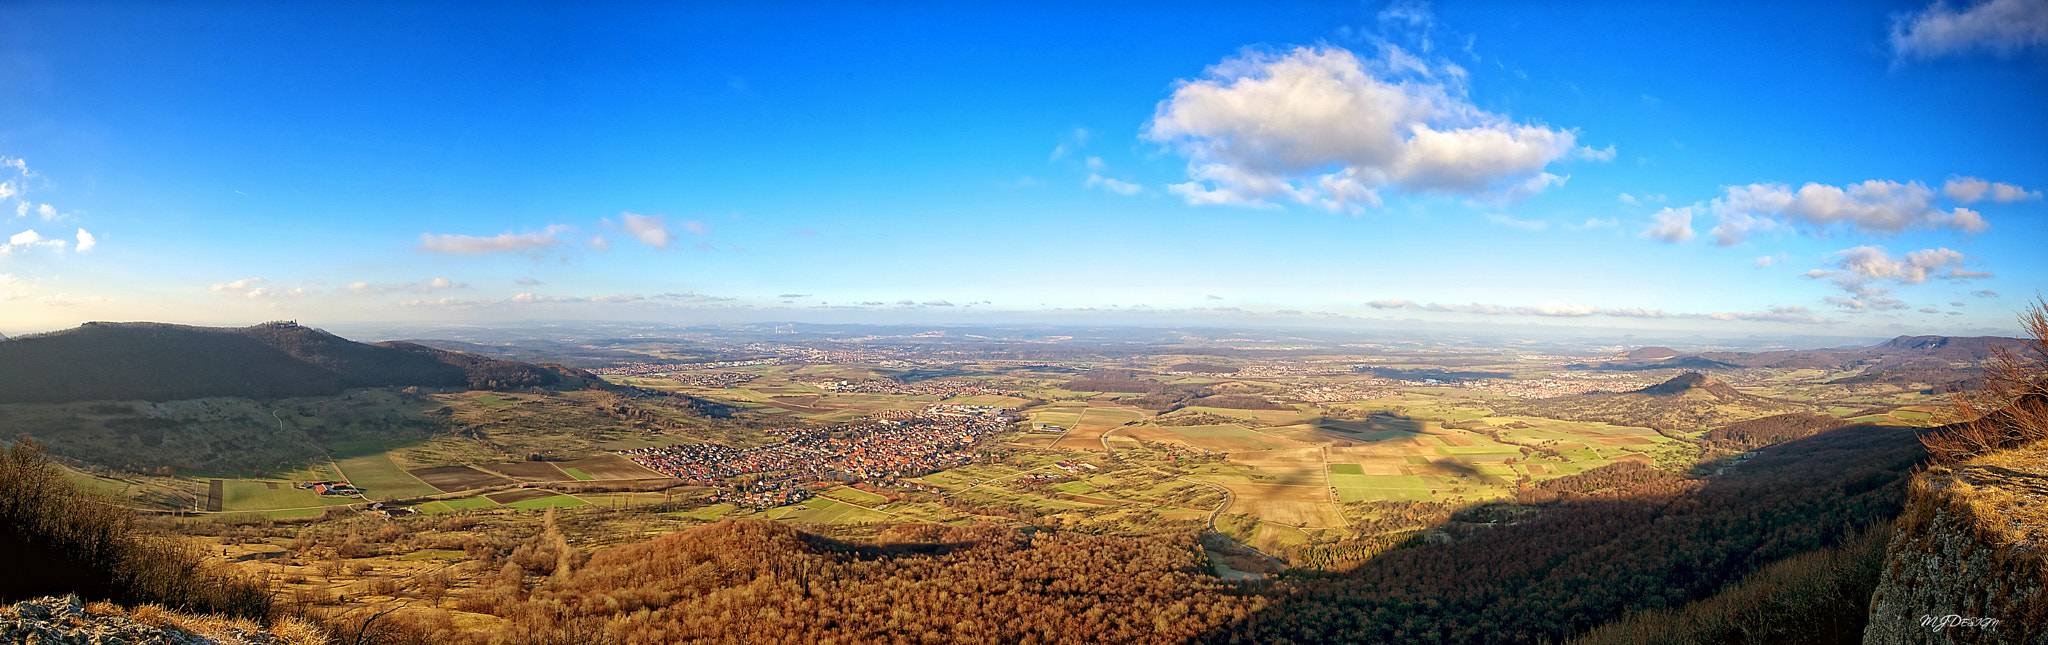 Photograph Panorama Breitenstein by MJ Design on 500px